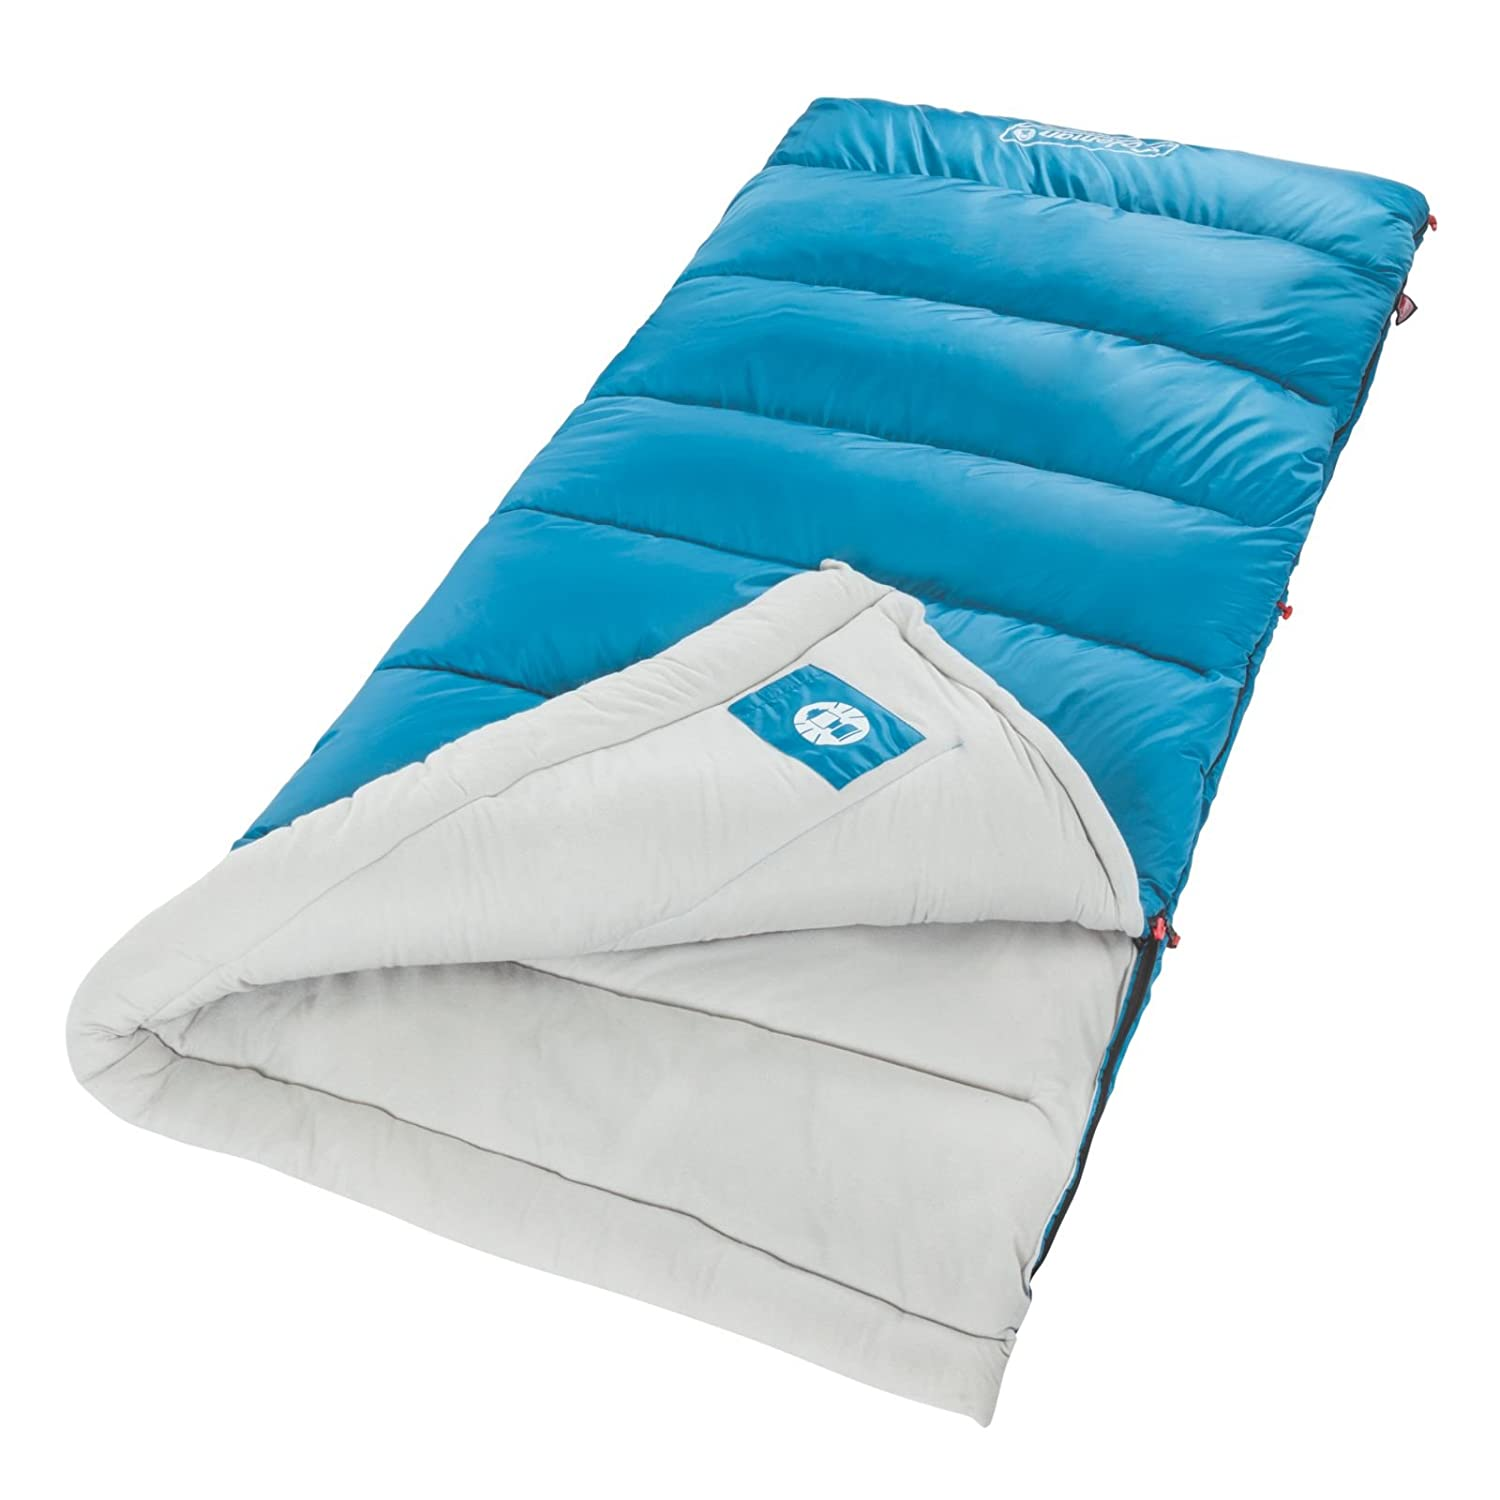 Coleman Autumn Glen Sleeping Bag